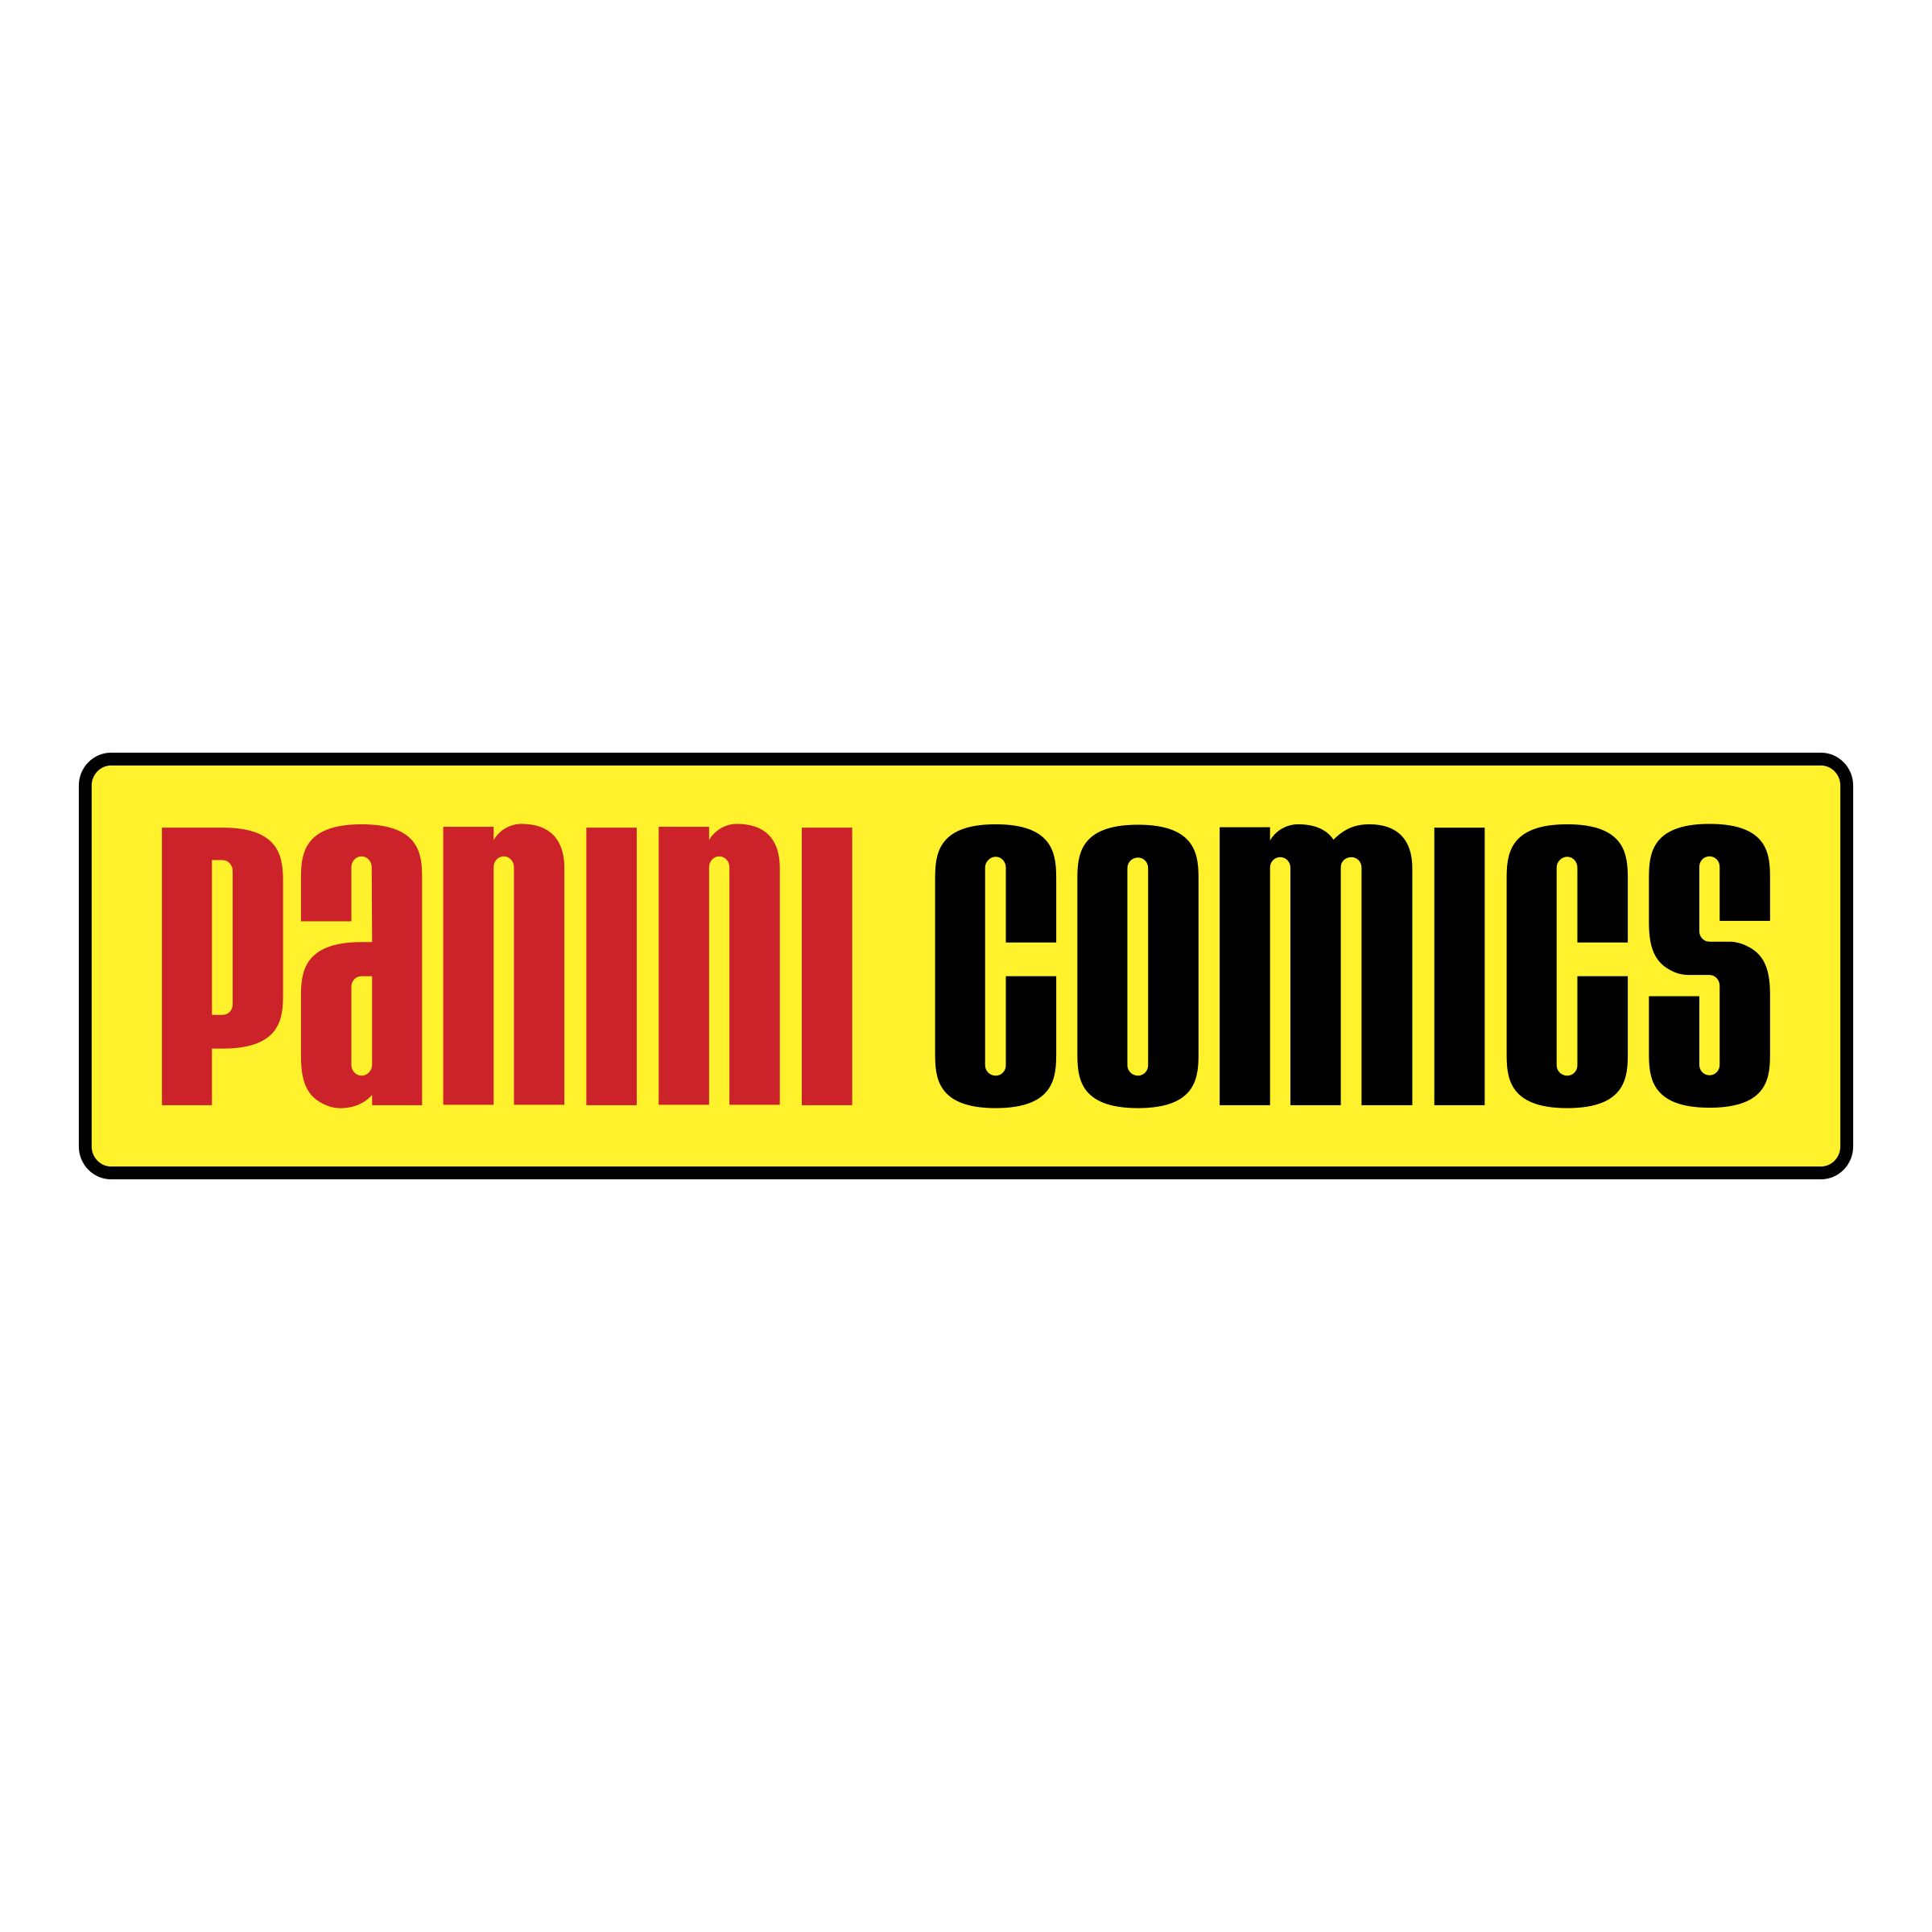 Panini Comics Logo PNG Transparent & SVG Vector.